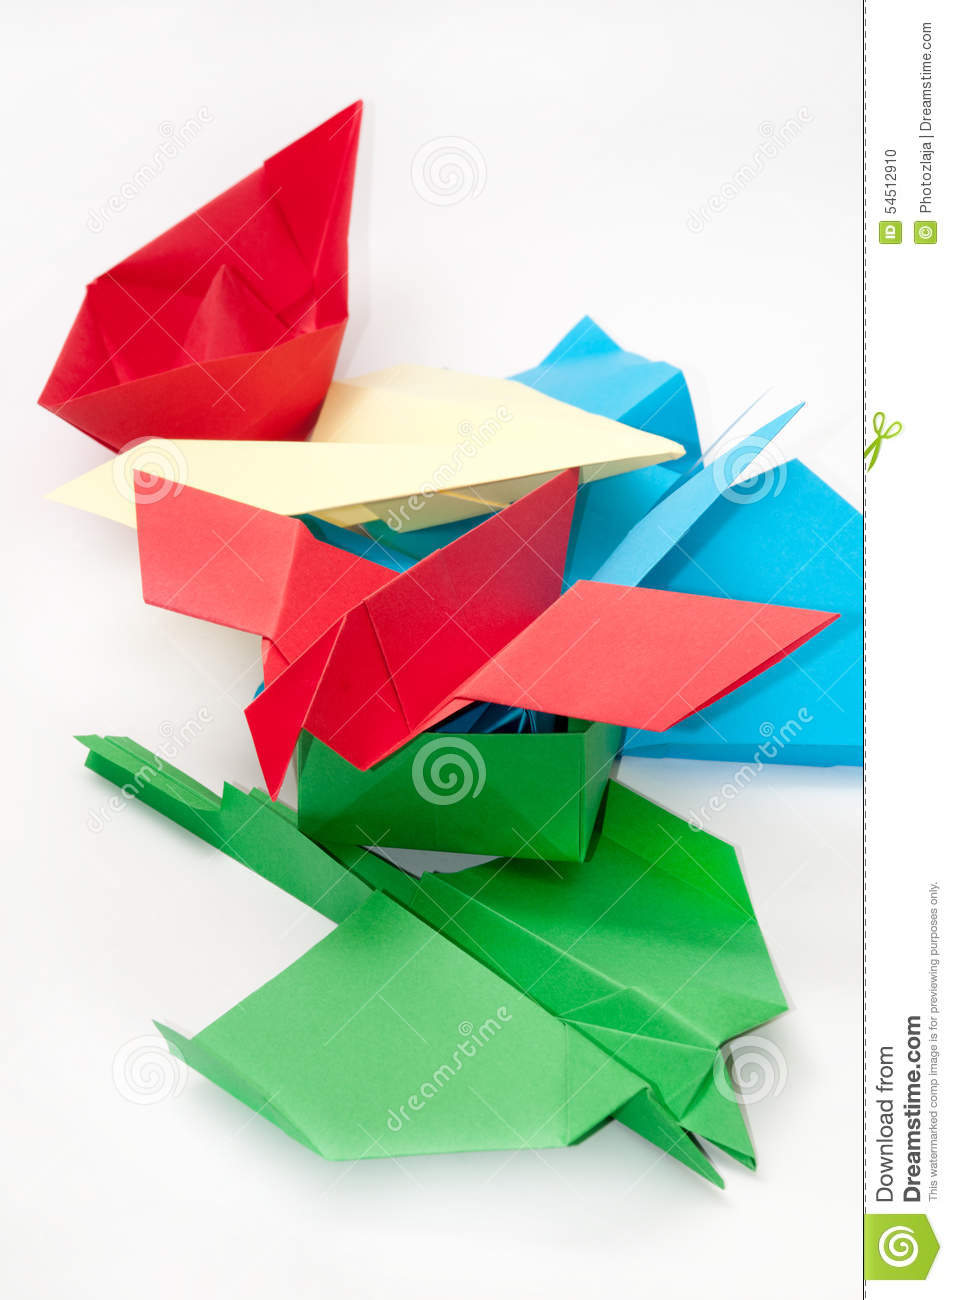 Pile bunch origami objects plane boat stock photo image 54512910 pile bunch origami objects plane boat jeuxipadfo Choice Image